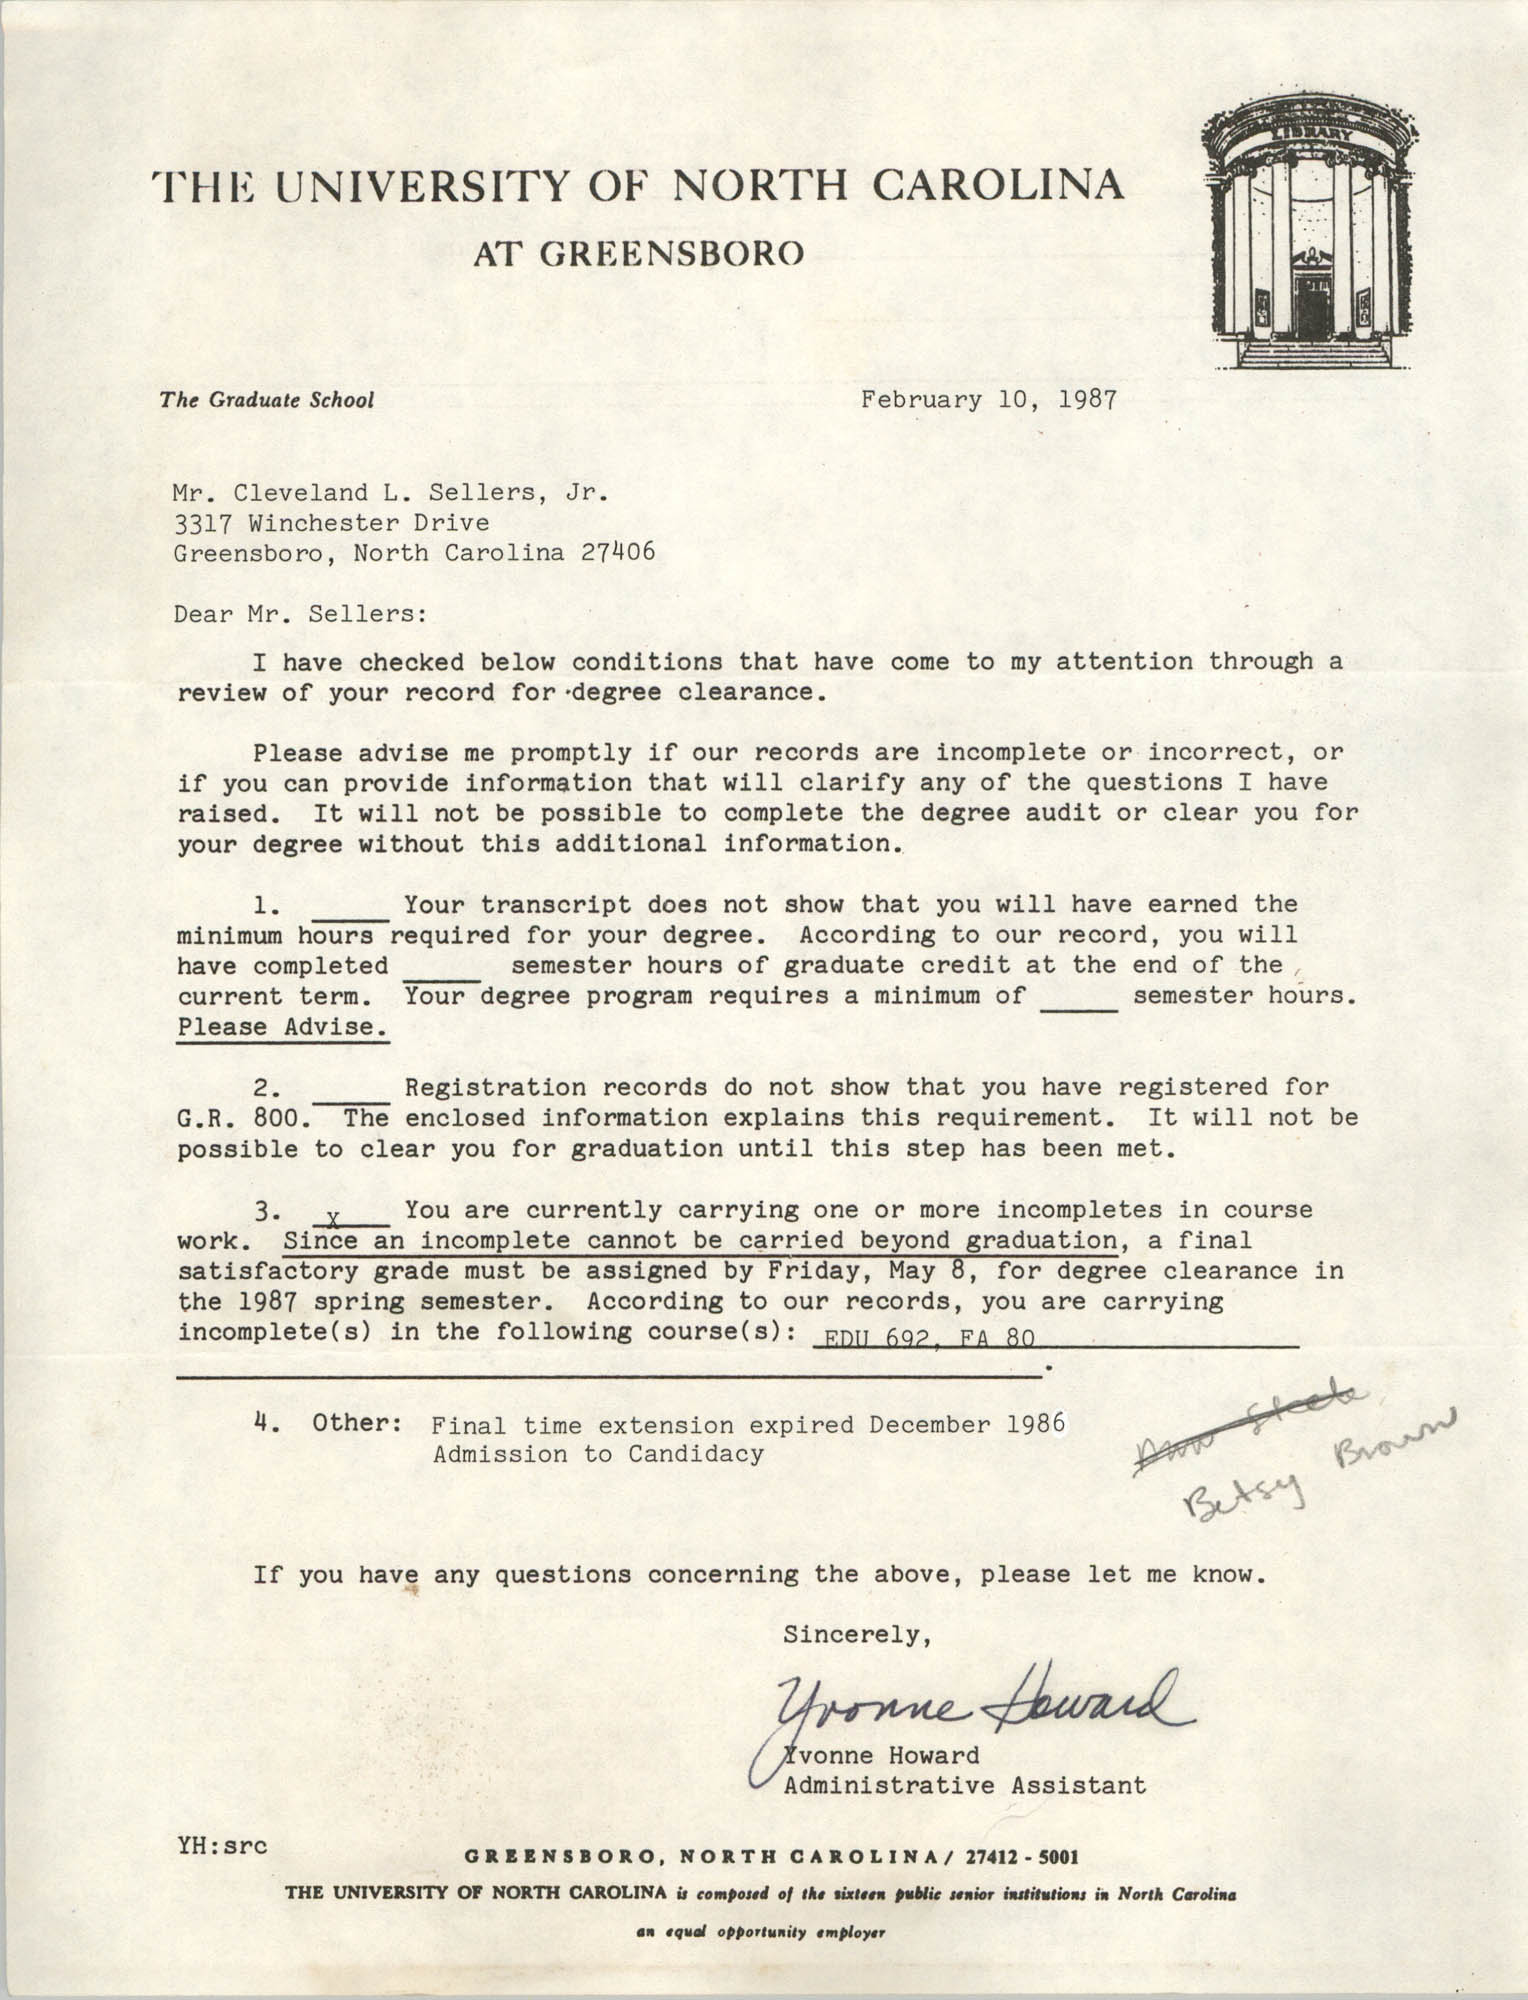 Letter from Yvonne Howard to Cleveland Sellers, February 10, 1987